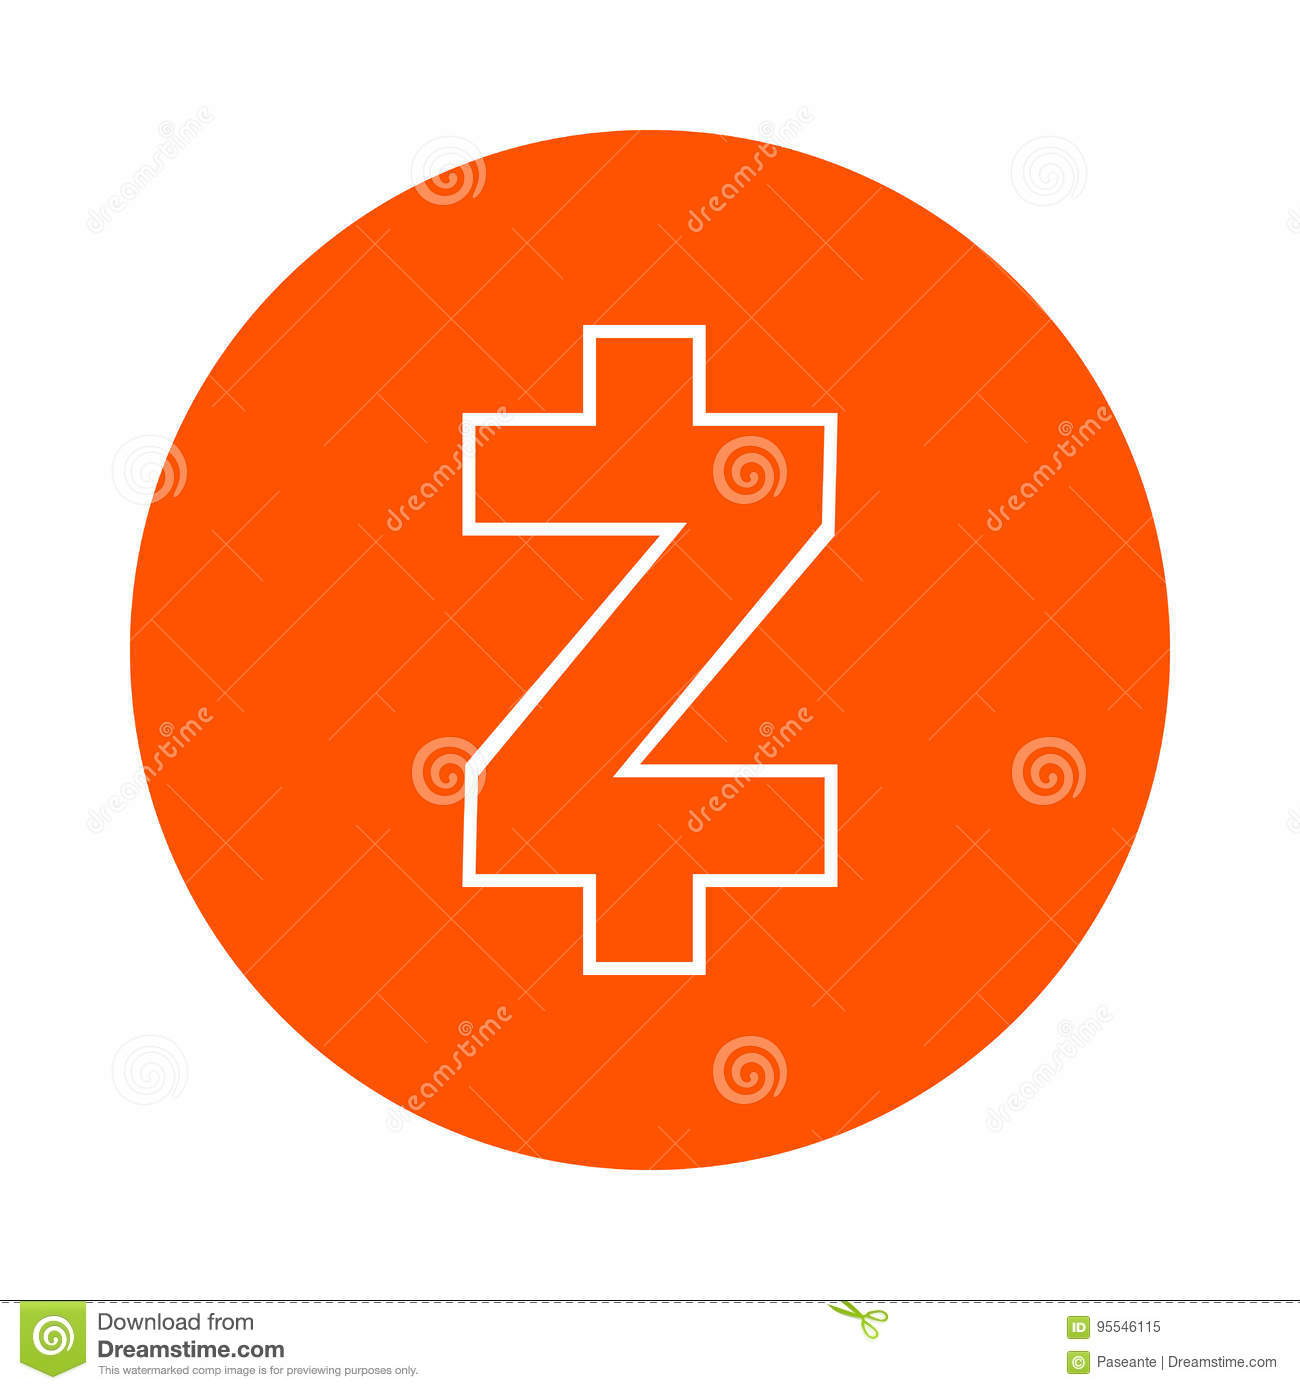 Download Symbol Of The Digital Crypto Currency Zcash Monochrome Round Linear Icon Flat Style